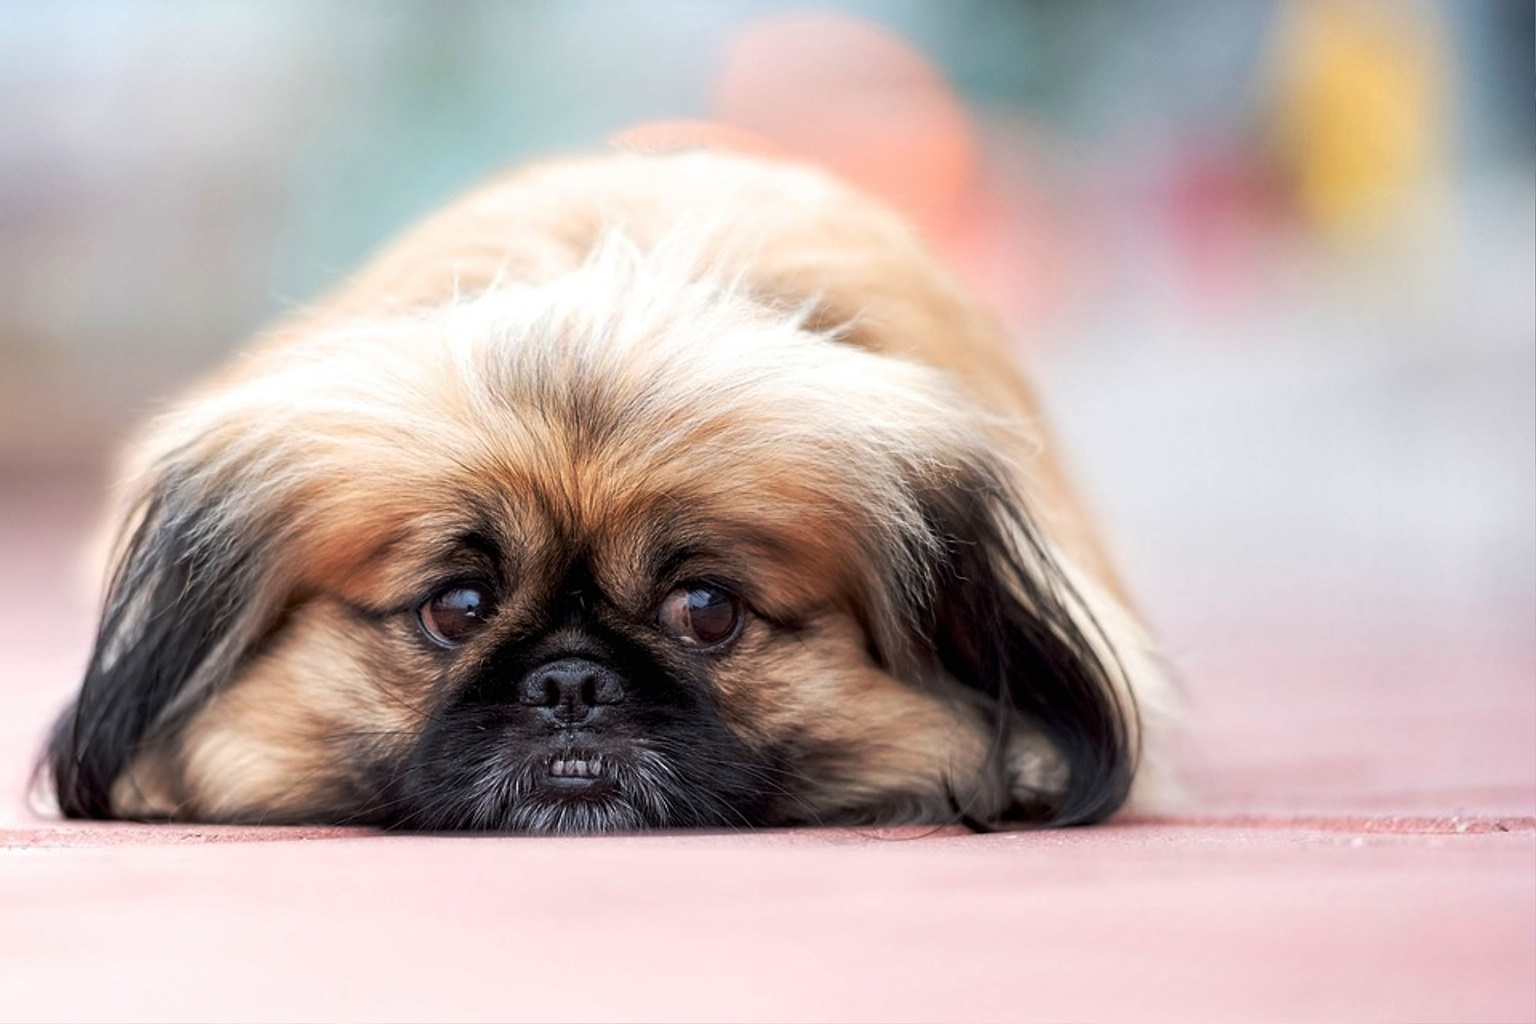 Pekingese dog breed